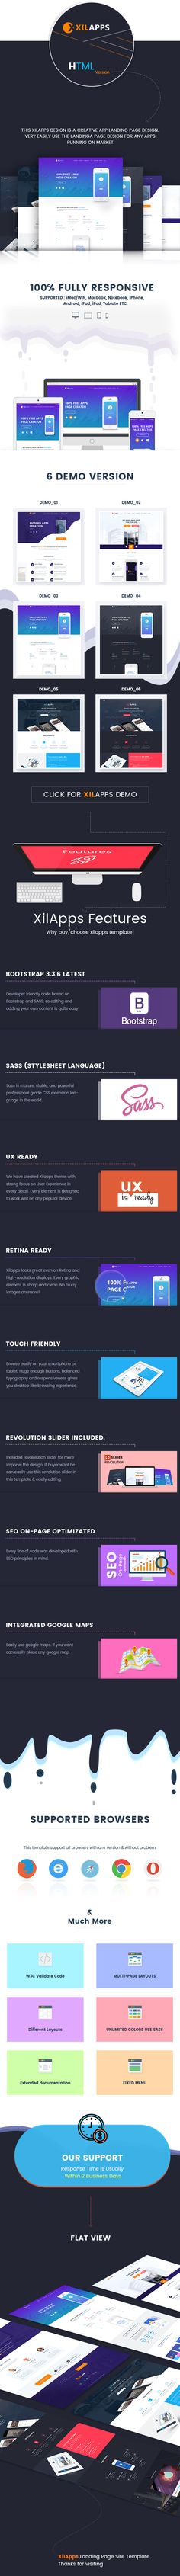 124 Best Landing Page Templates images in 2019 | Page template, App